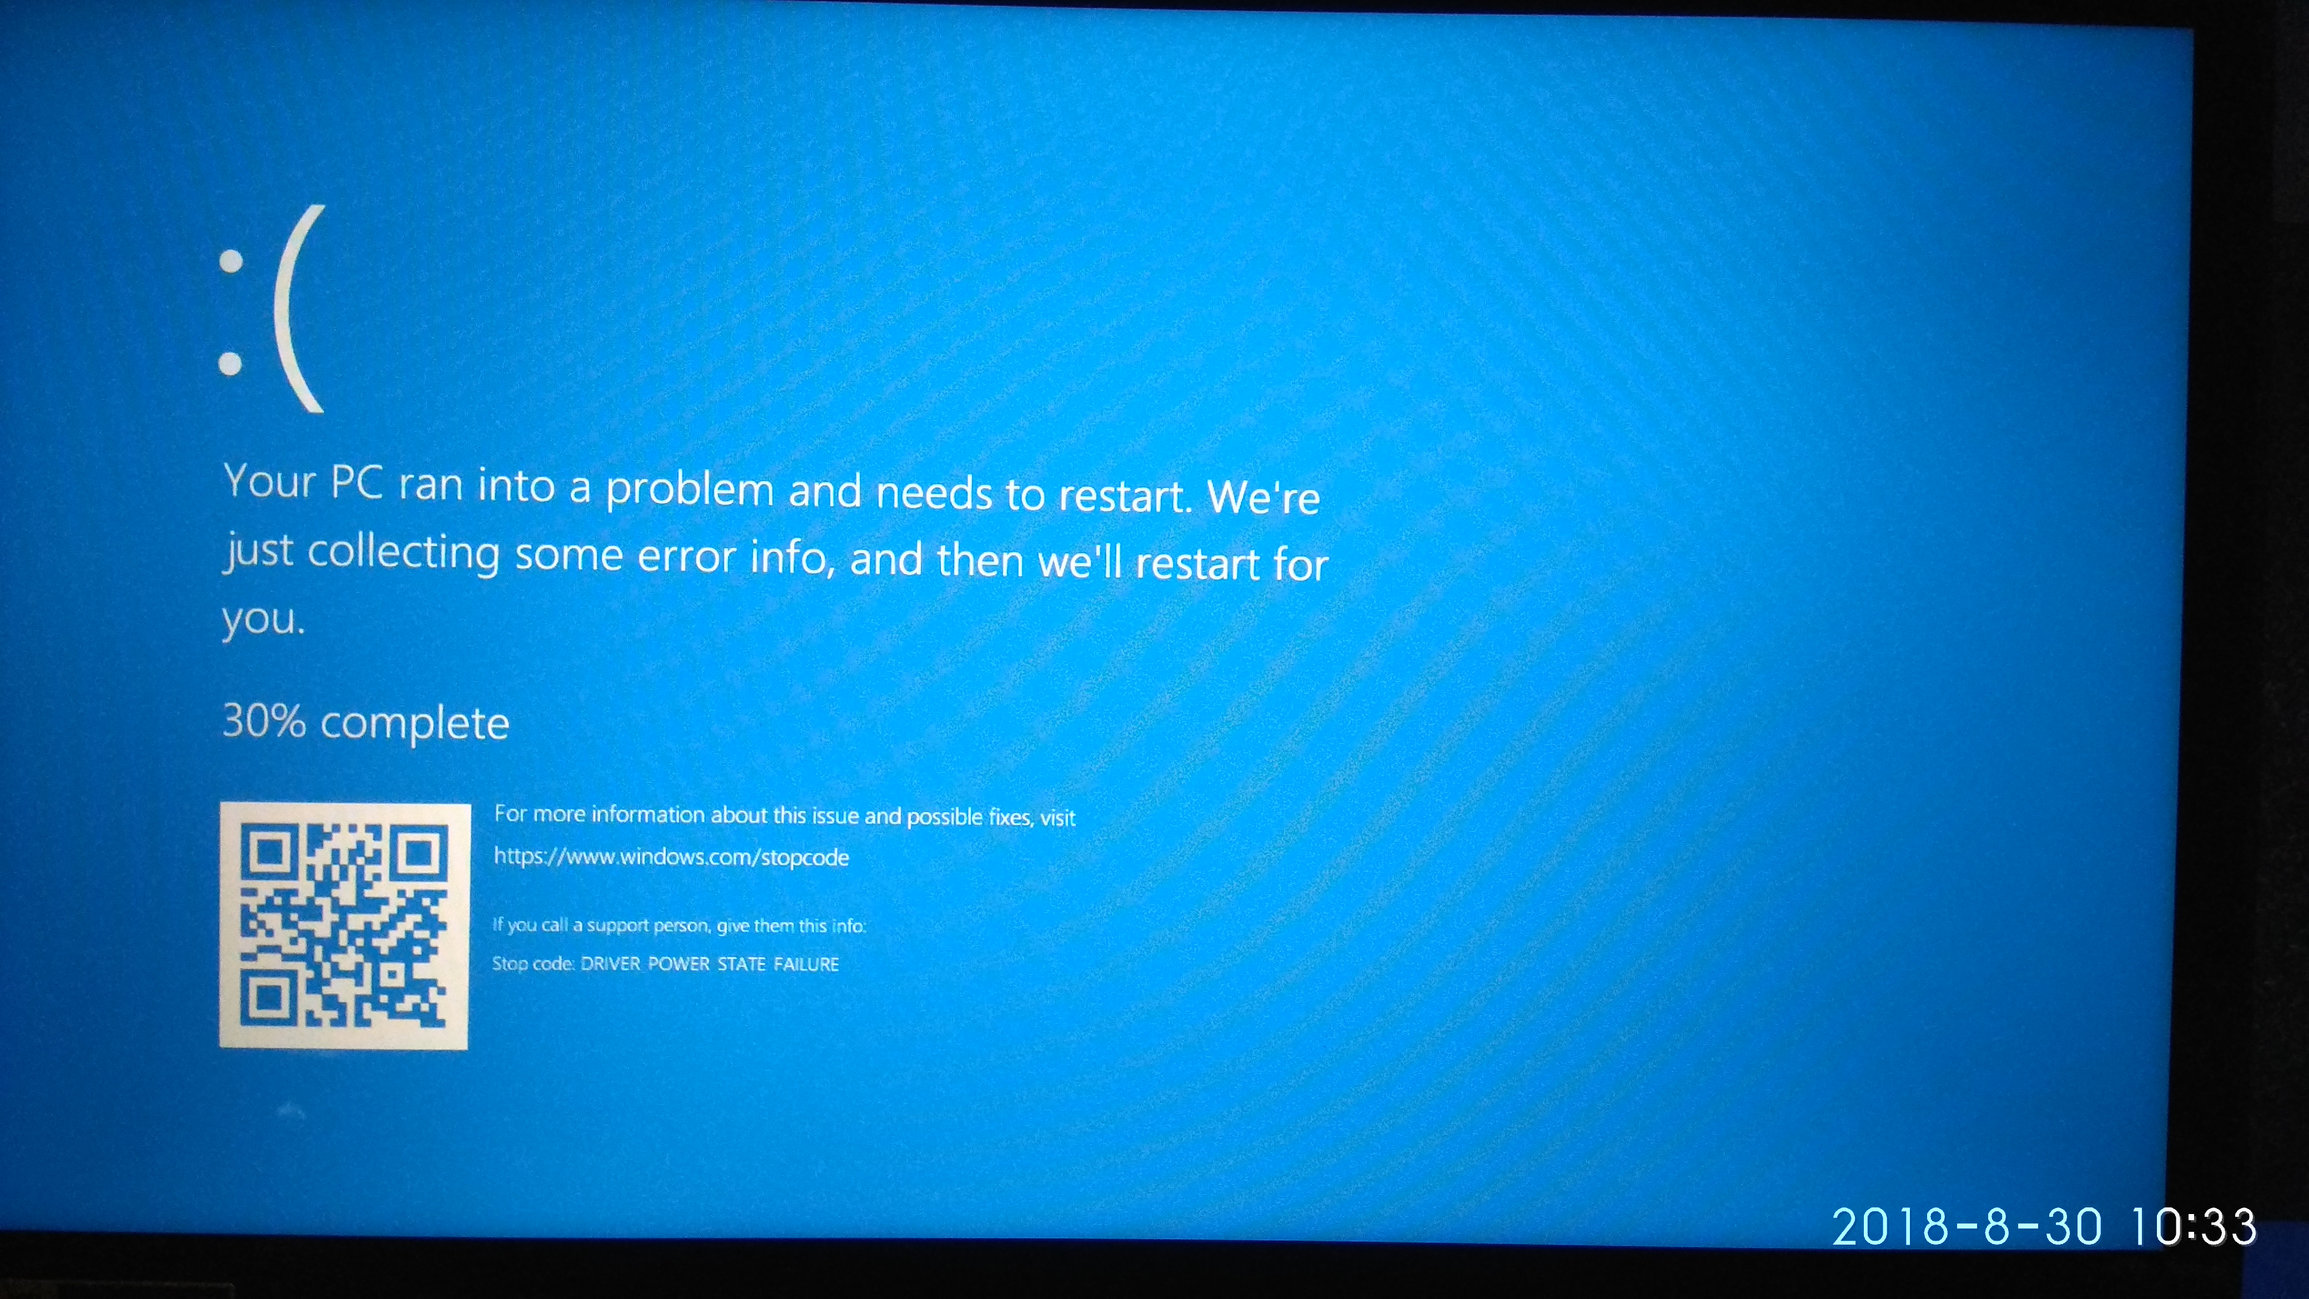 Driver power state failure in windows 10 how to fix | windows 10.